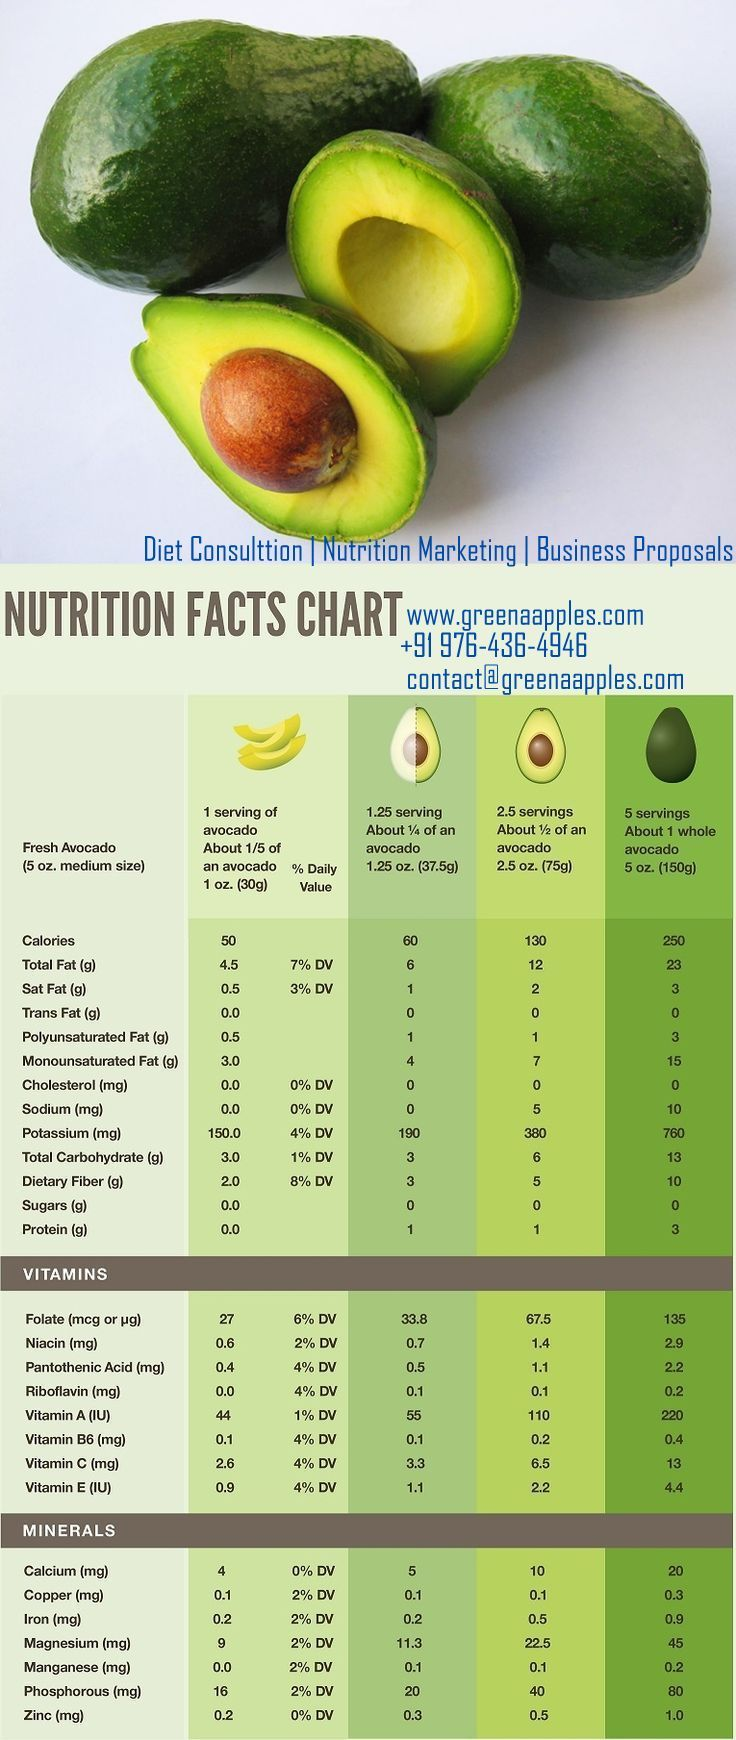 Nutritional Facts Chart for Avocado